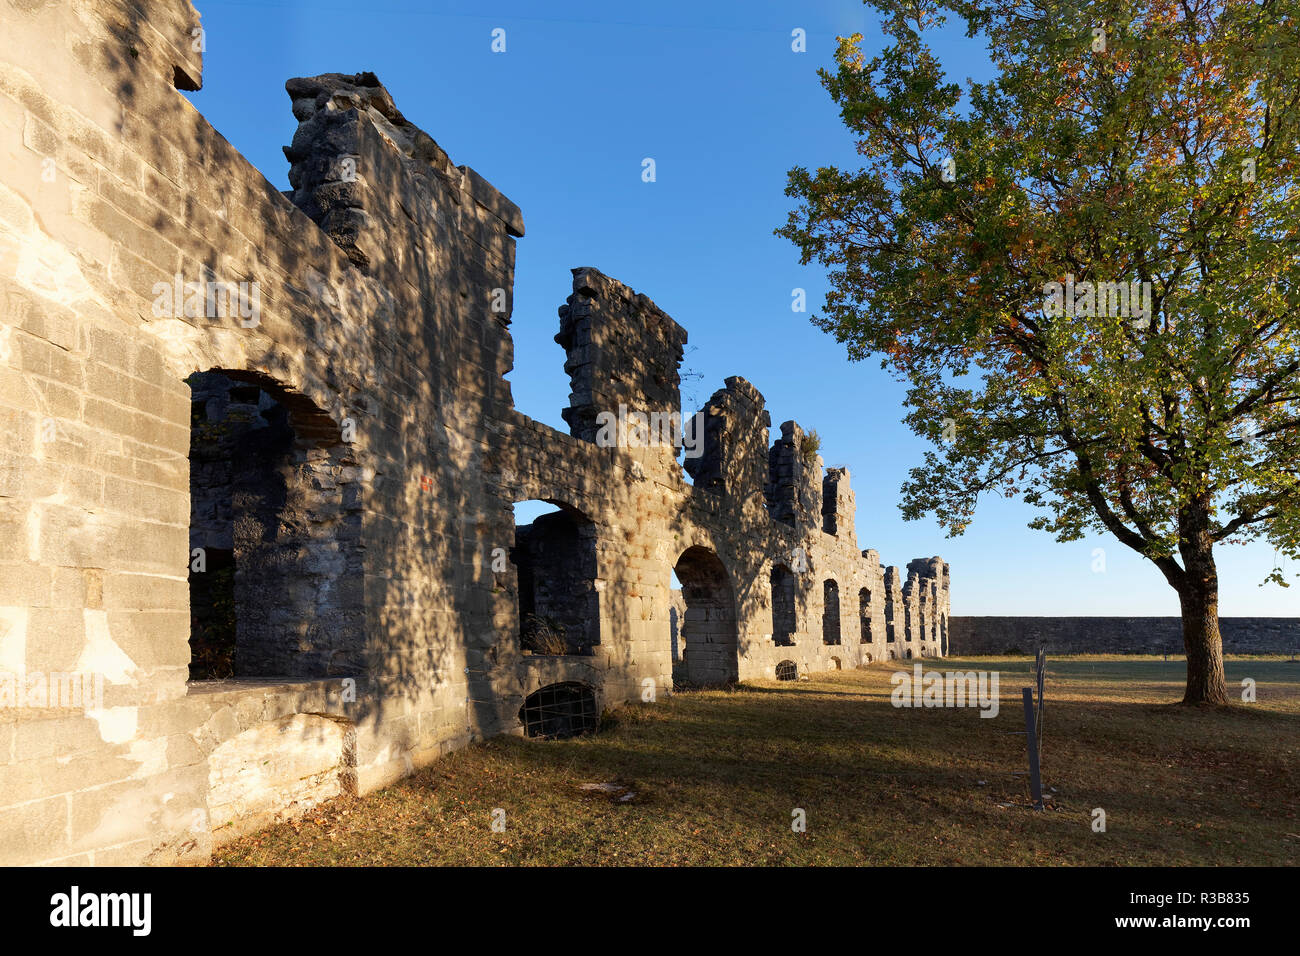 Armoury ruin, east wing of the former castle fortress Rothenberg near Schnaittach, Franconian Alb, Hersbrucker Alb - Stock Image